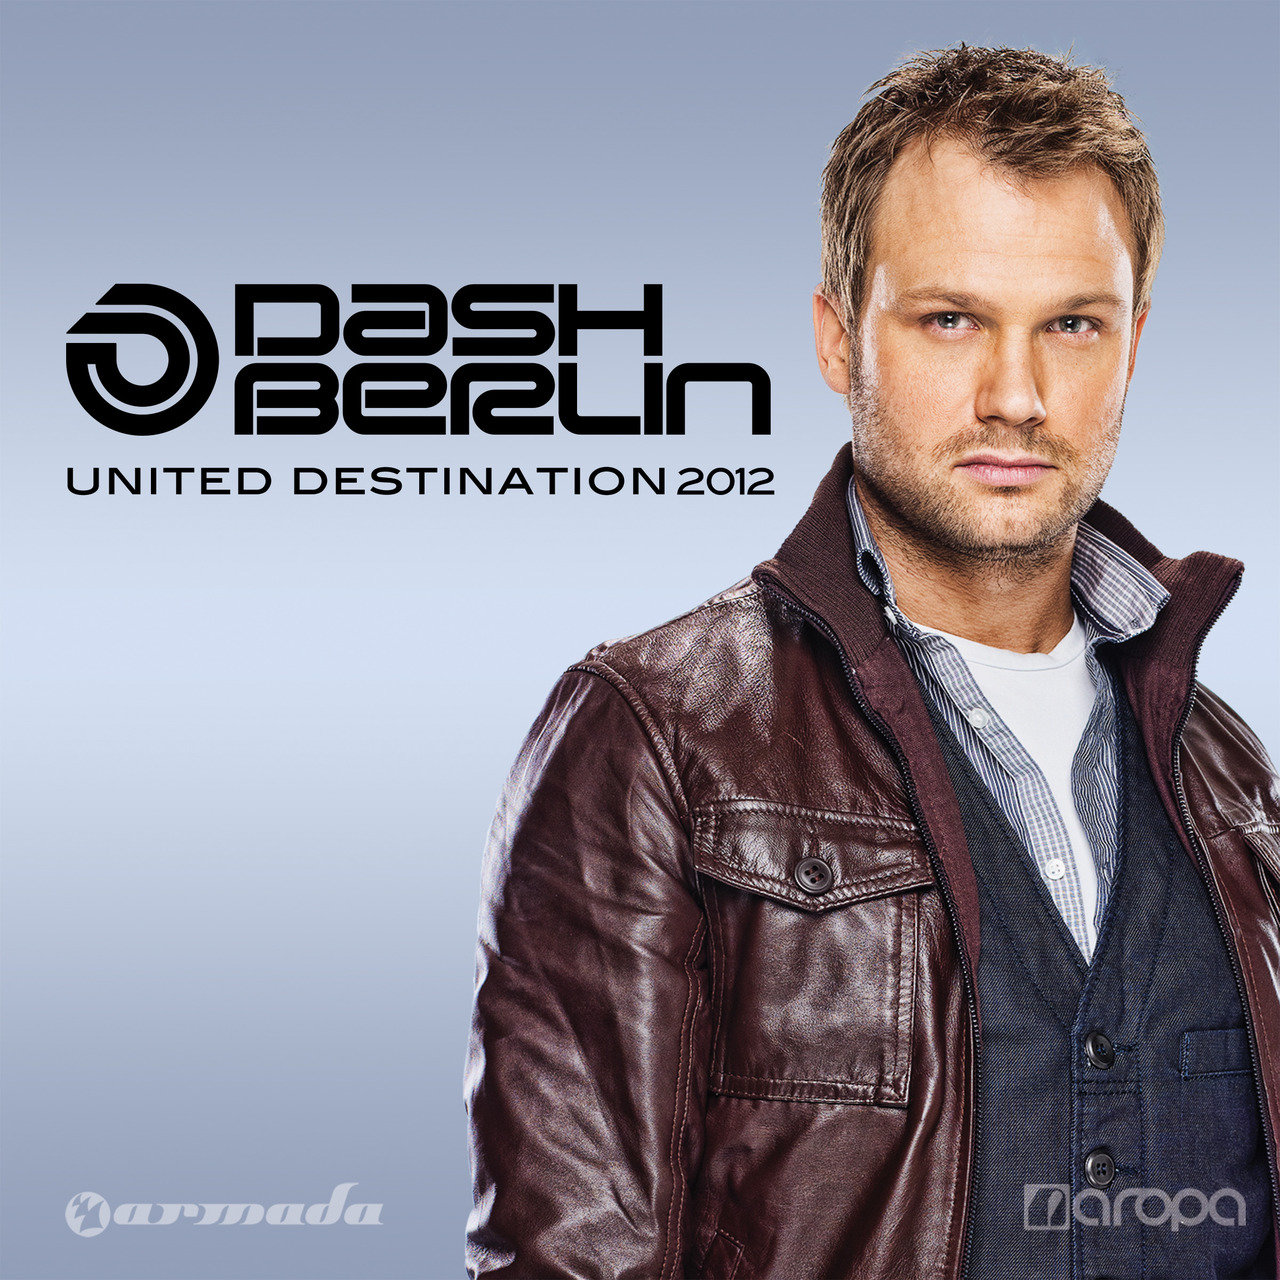 United Destination 2012 (Extended Versions)